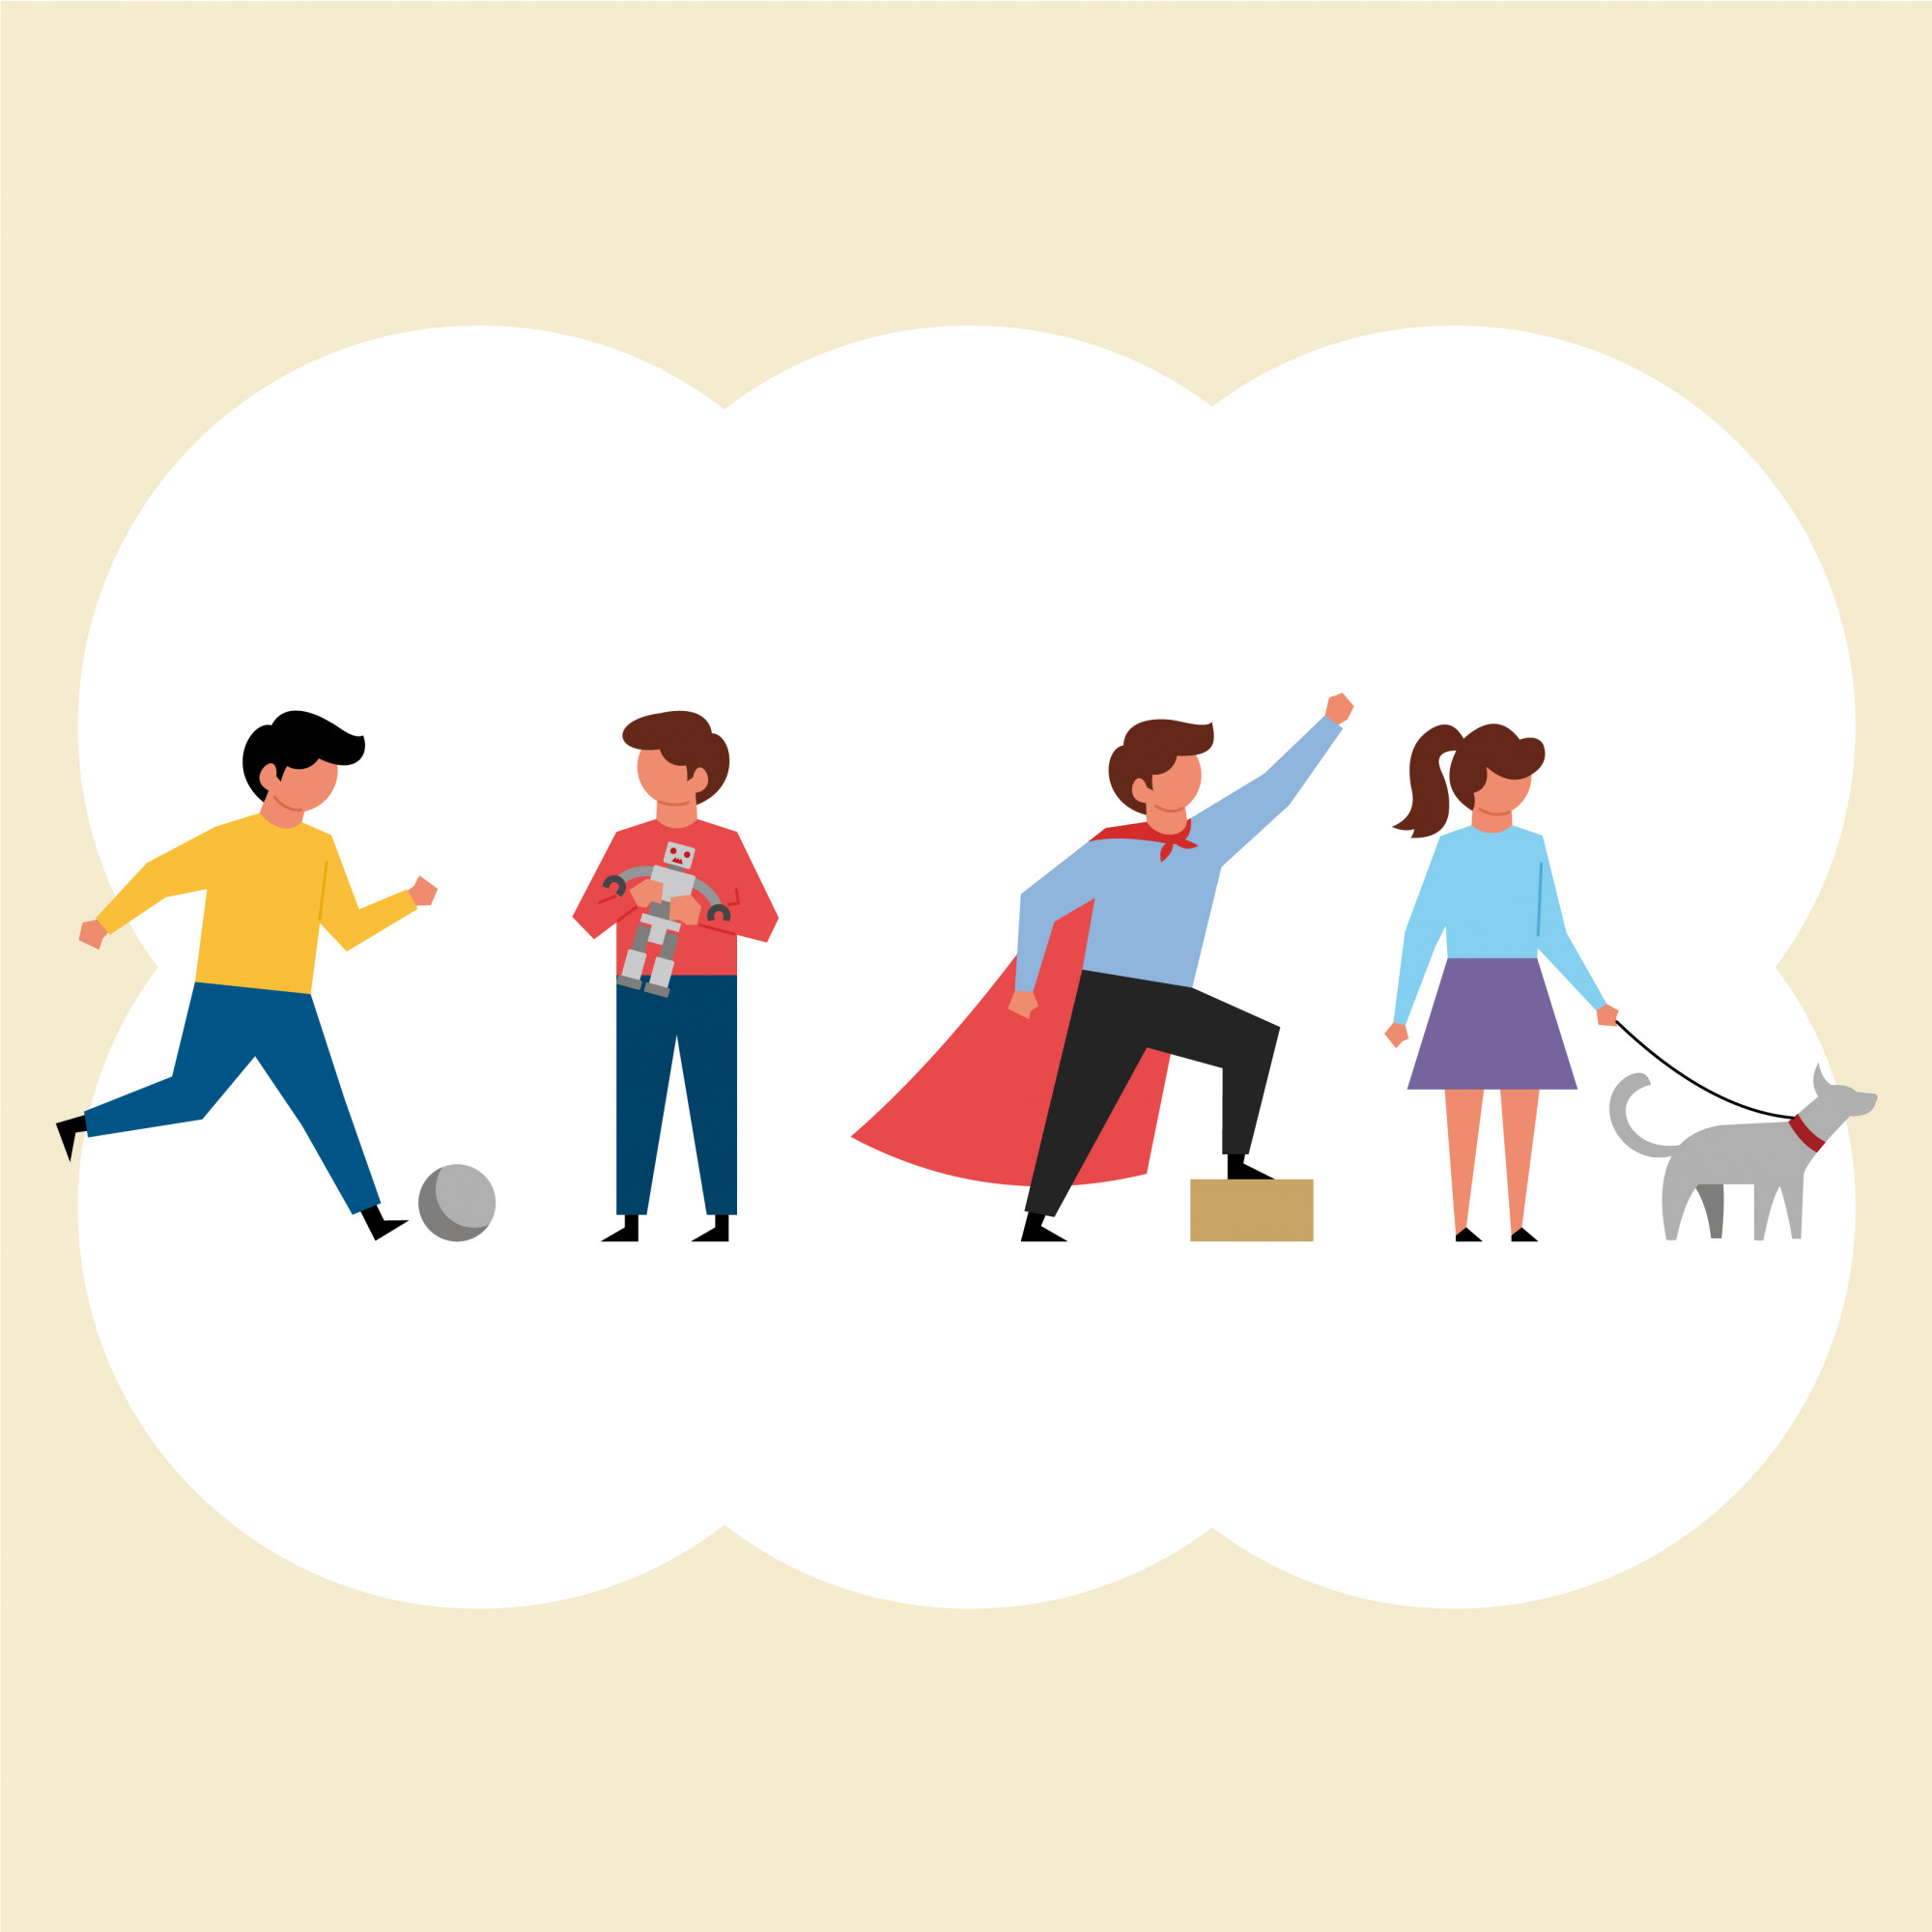 Children and Their Activities Characters Pack in Flat Design